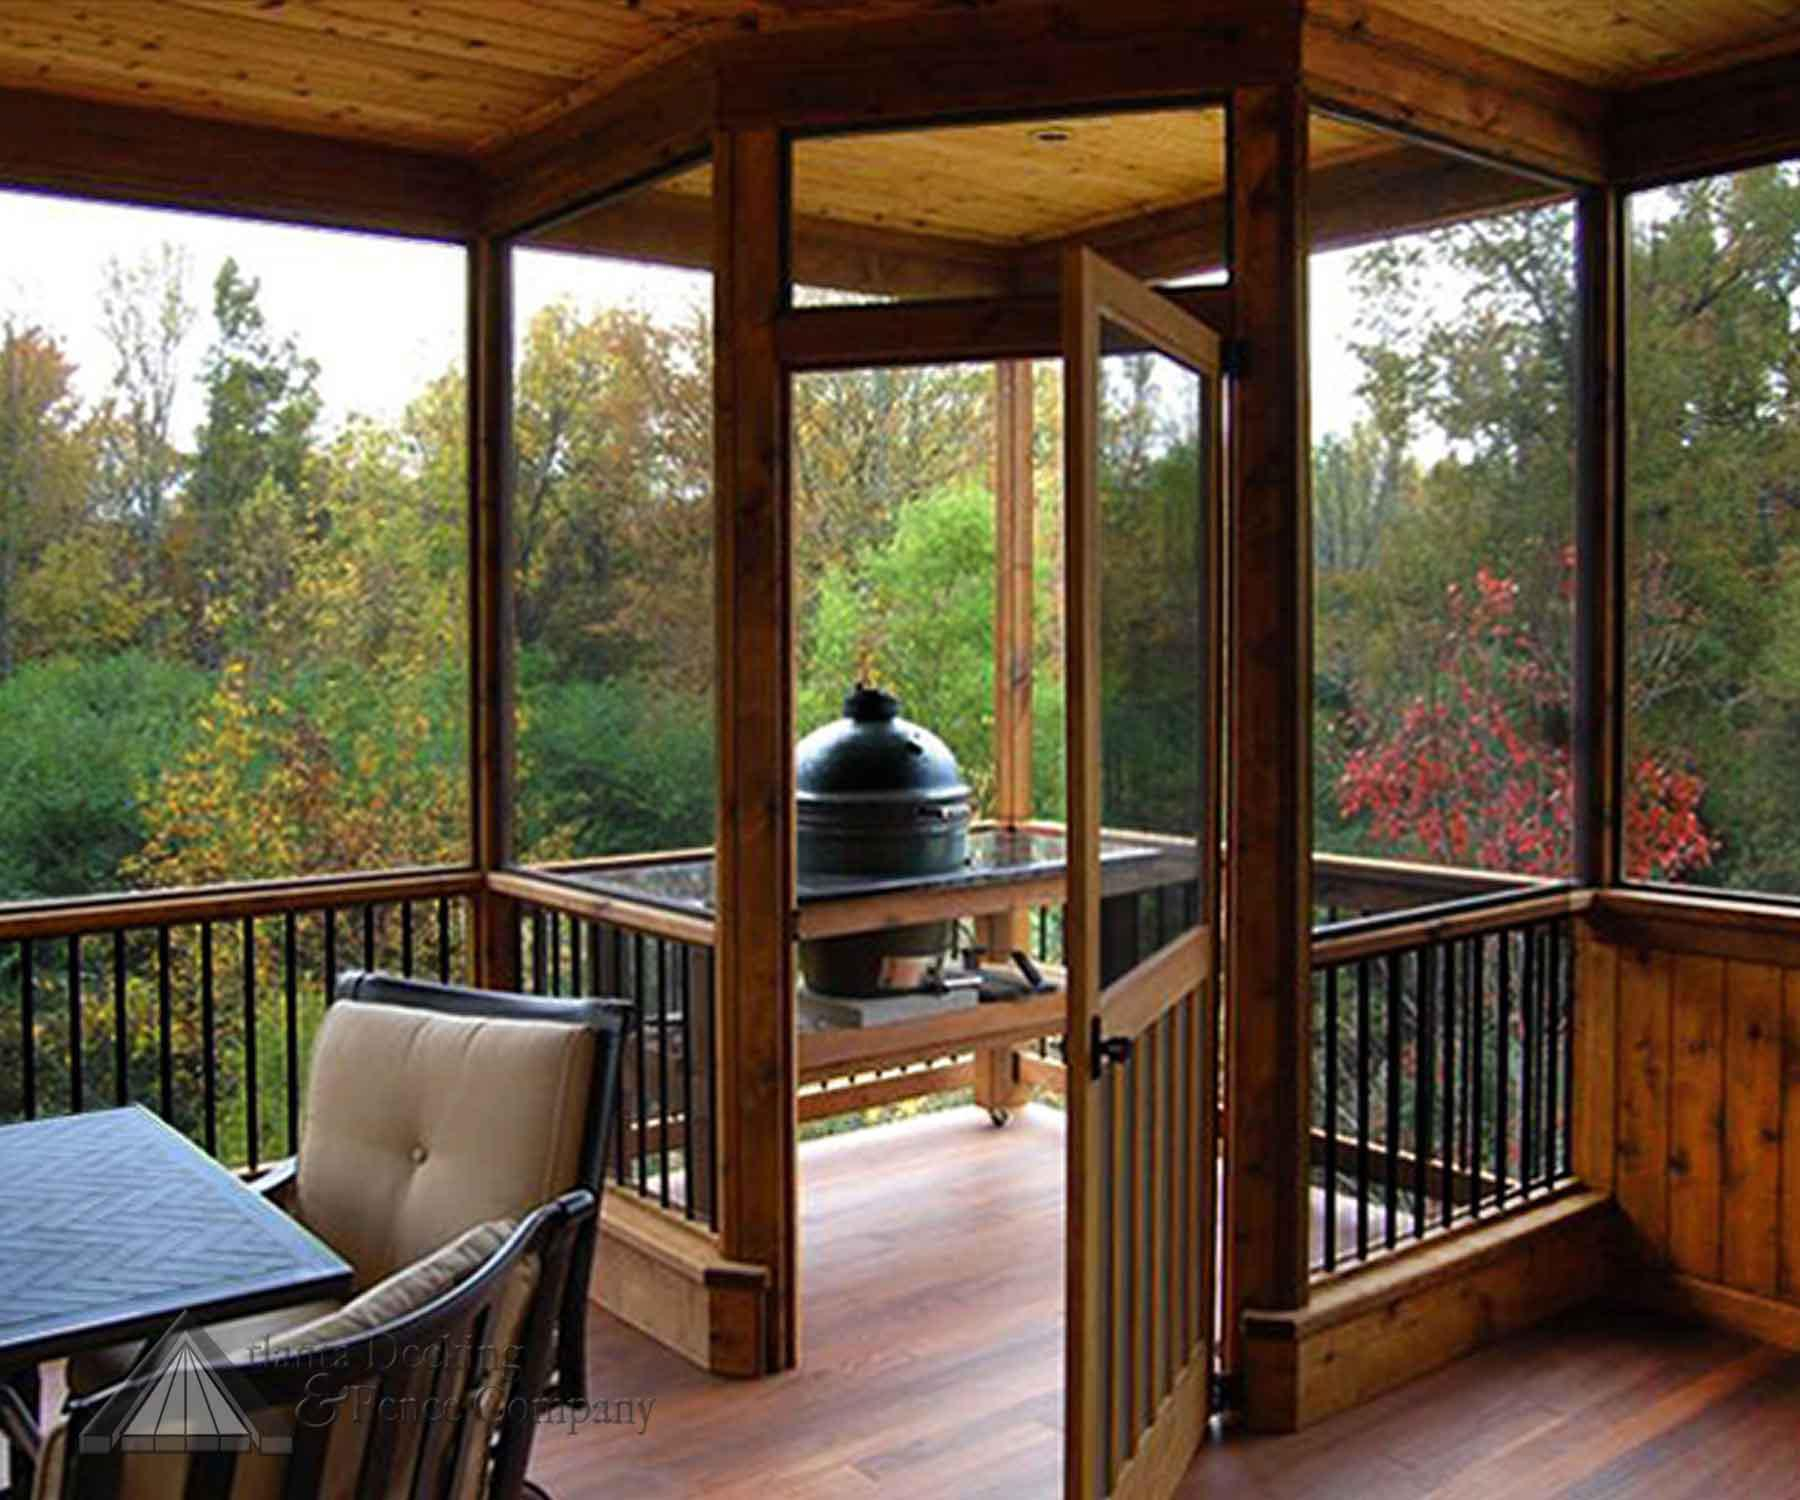 Screen Porch Ideas Designs: Remarkable Screened In Porch Ideas With Deck Images